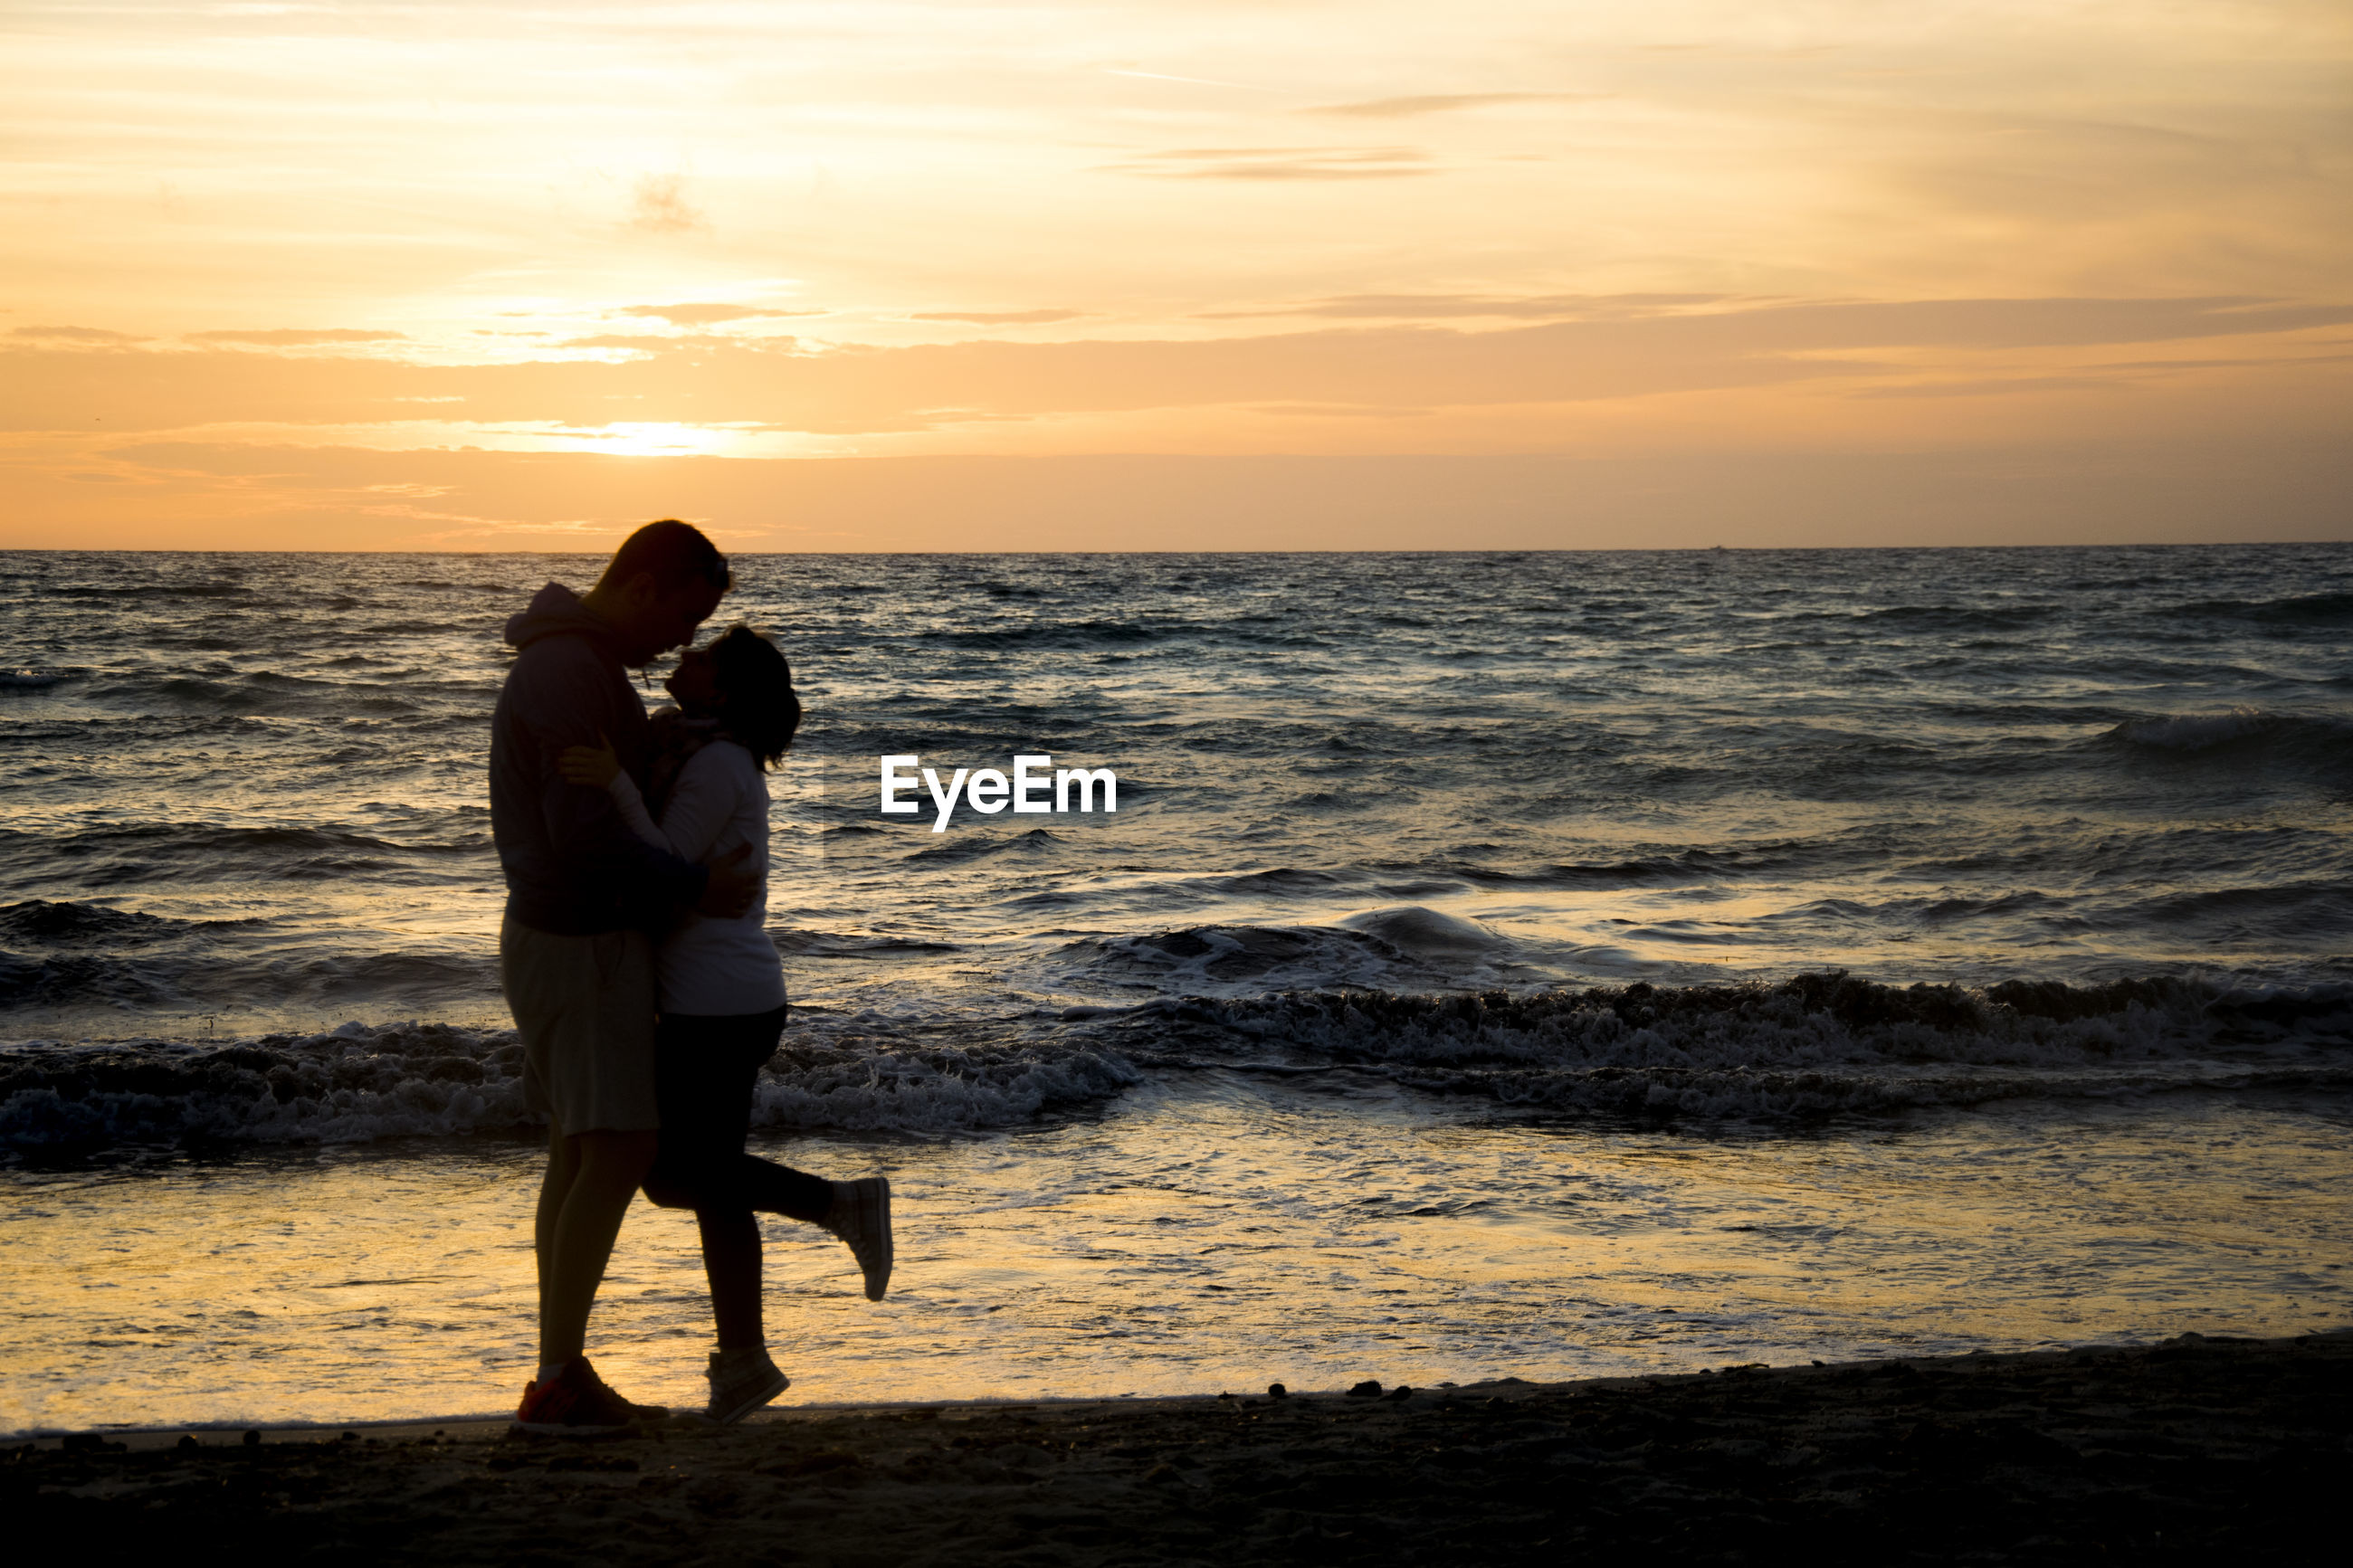 Silhouette romantic couple standing on shore at beach against sky during sunset